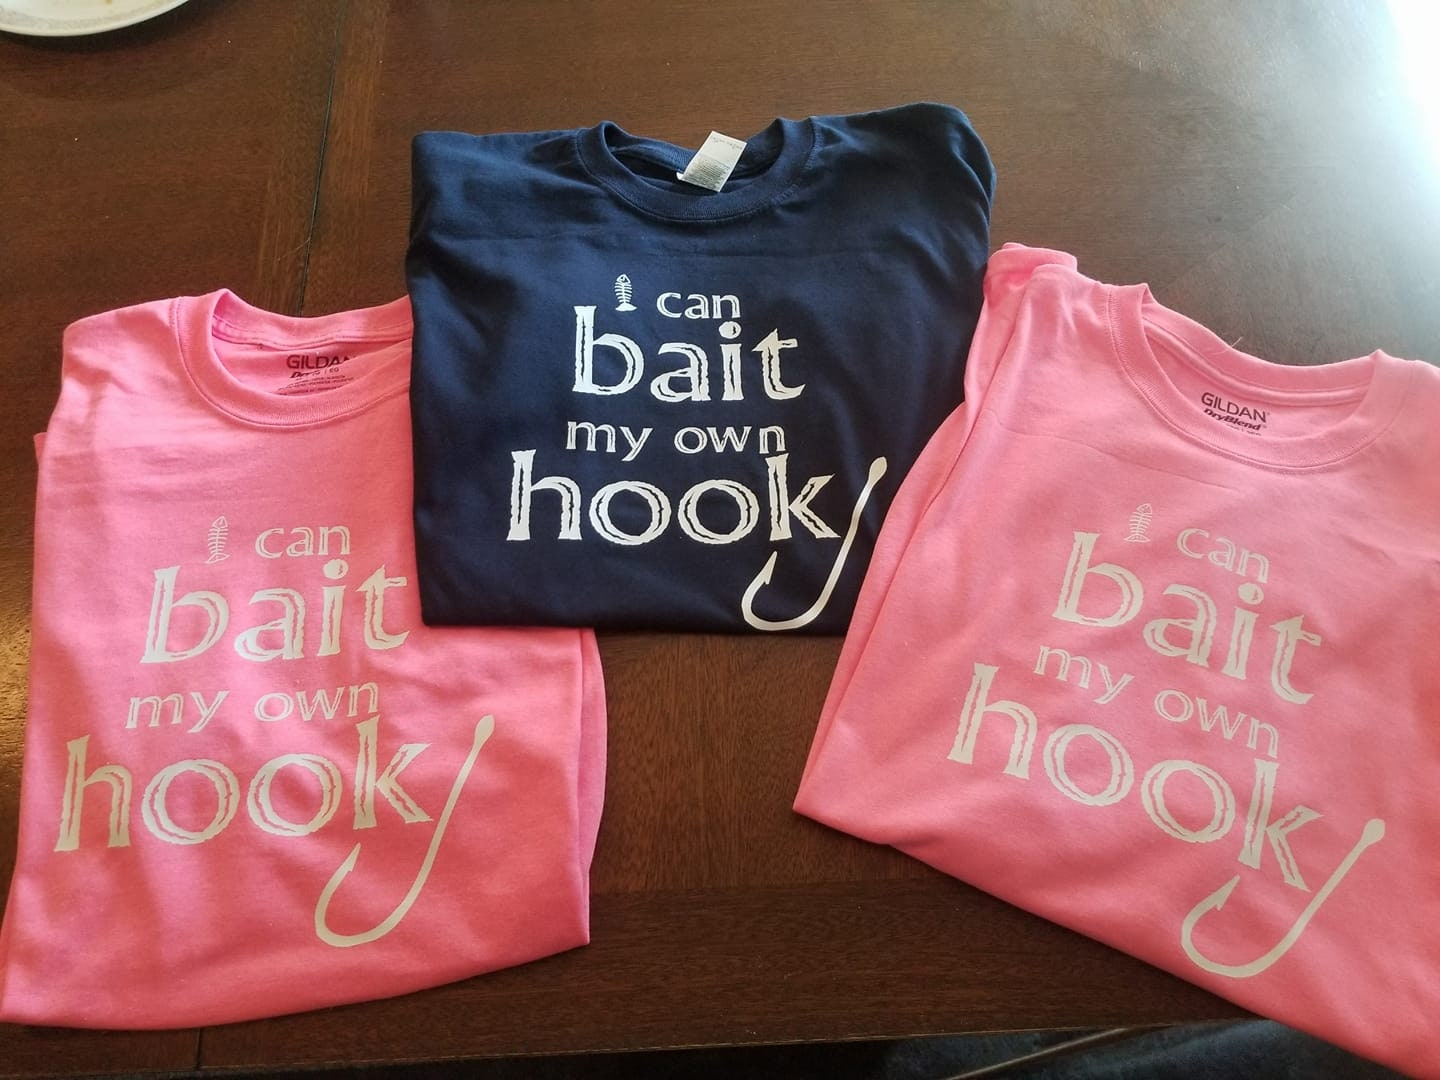 I can bait my own hook t shirt